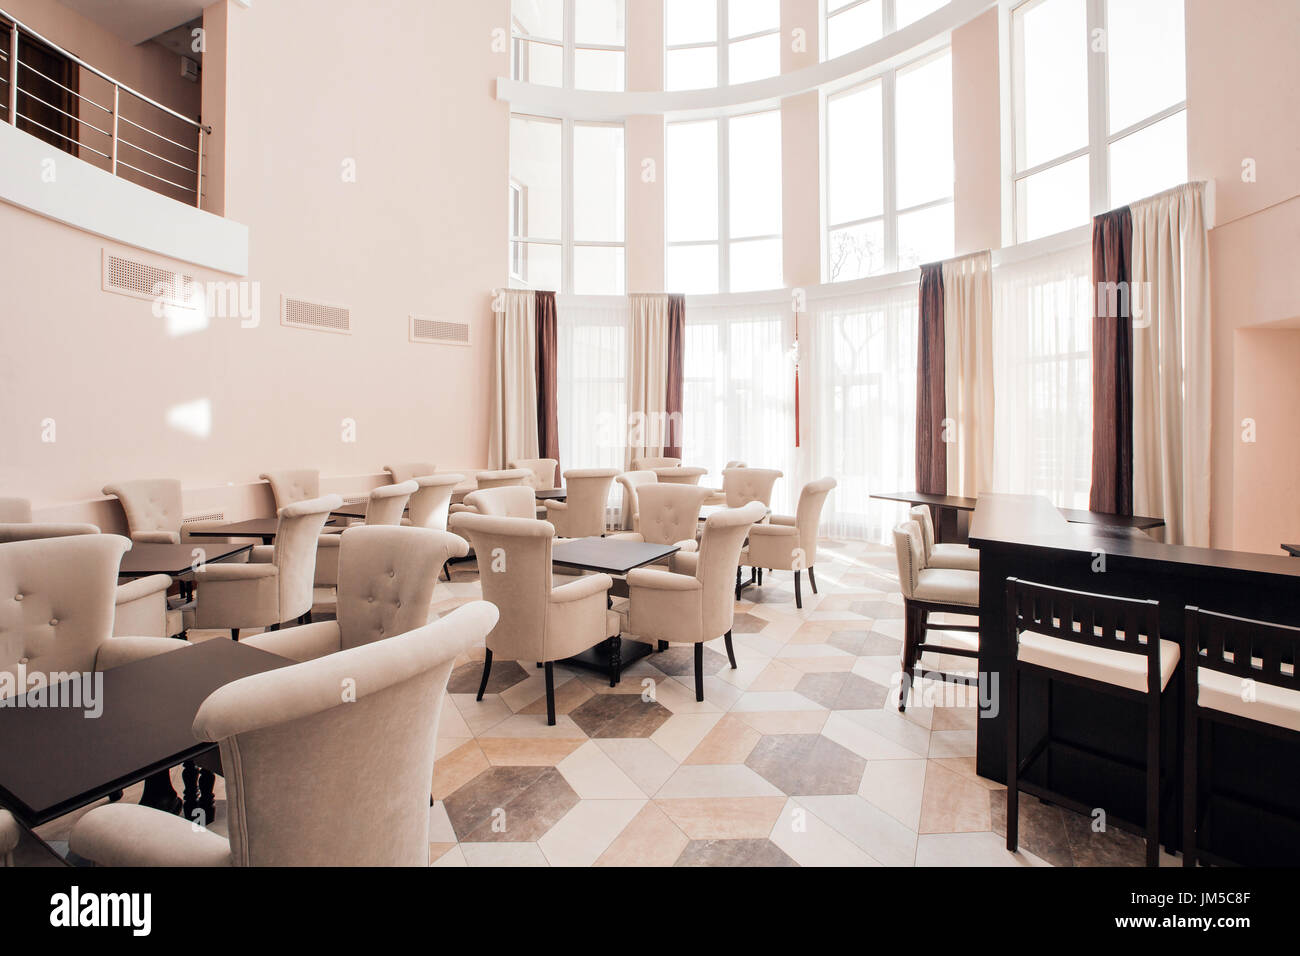 Modern luxury hotel lobby interior stock photo: 150095471 alamy